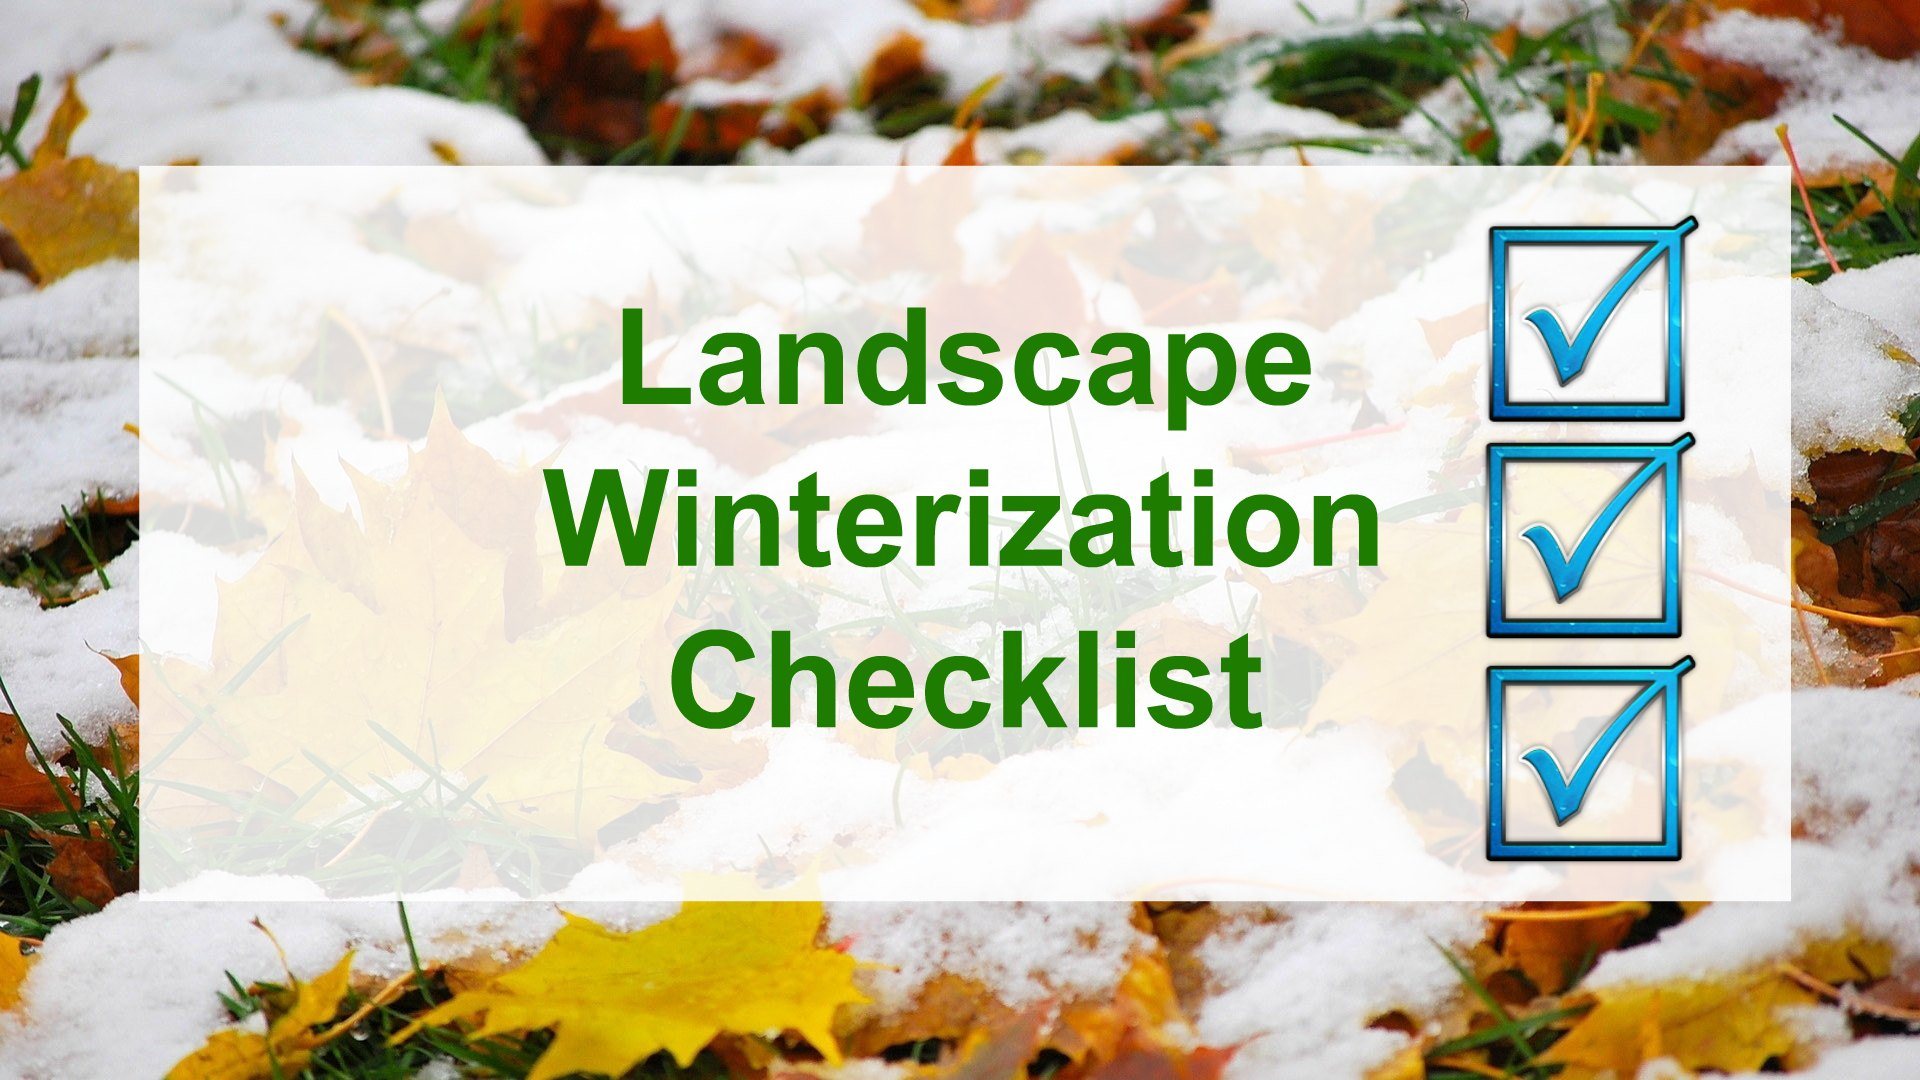 Here's a Winterization Checklist to get your Yard Ready for the Cold Weather